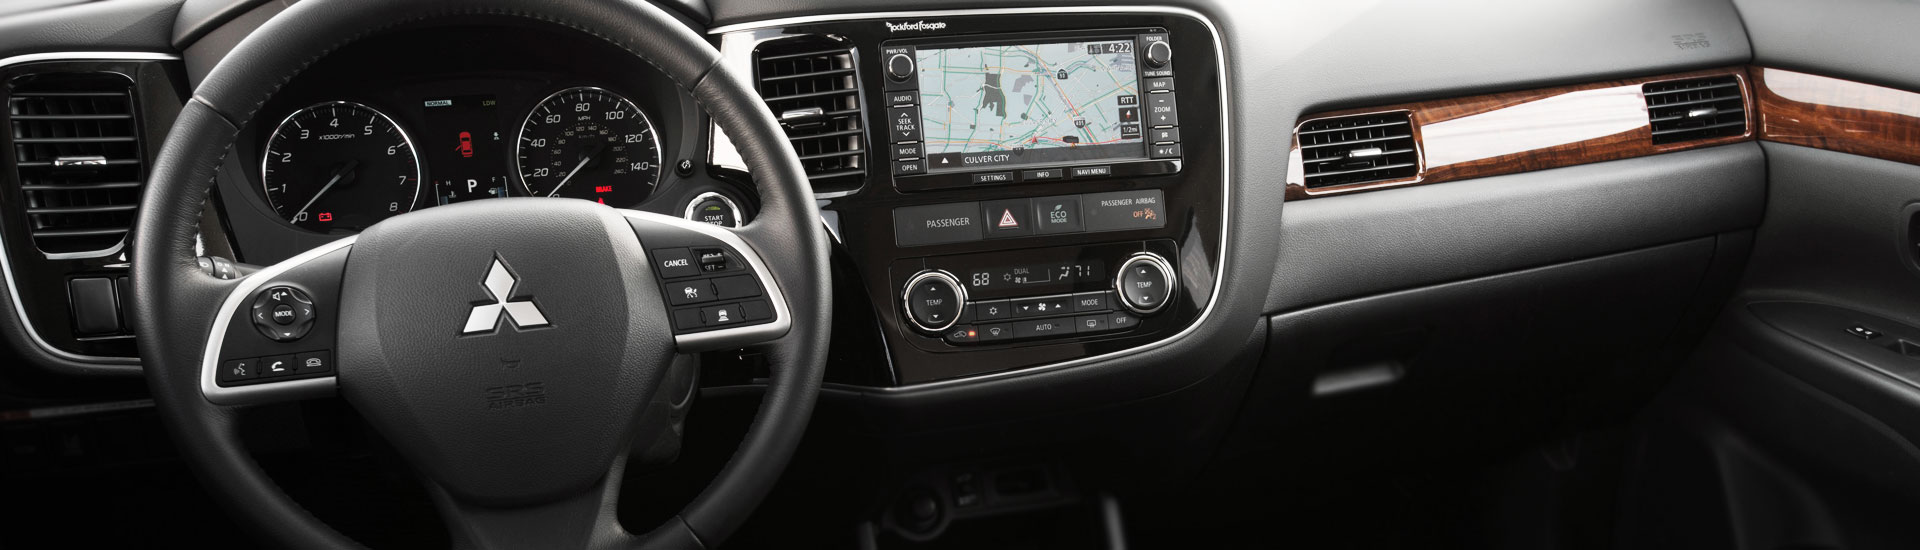 Mitsubishi Outlander Custom Dash Kits